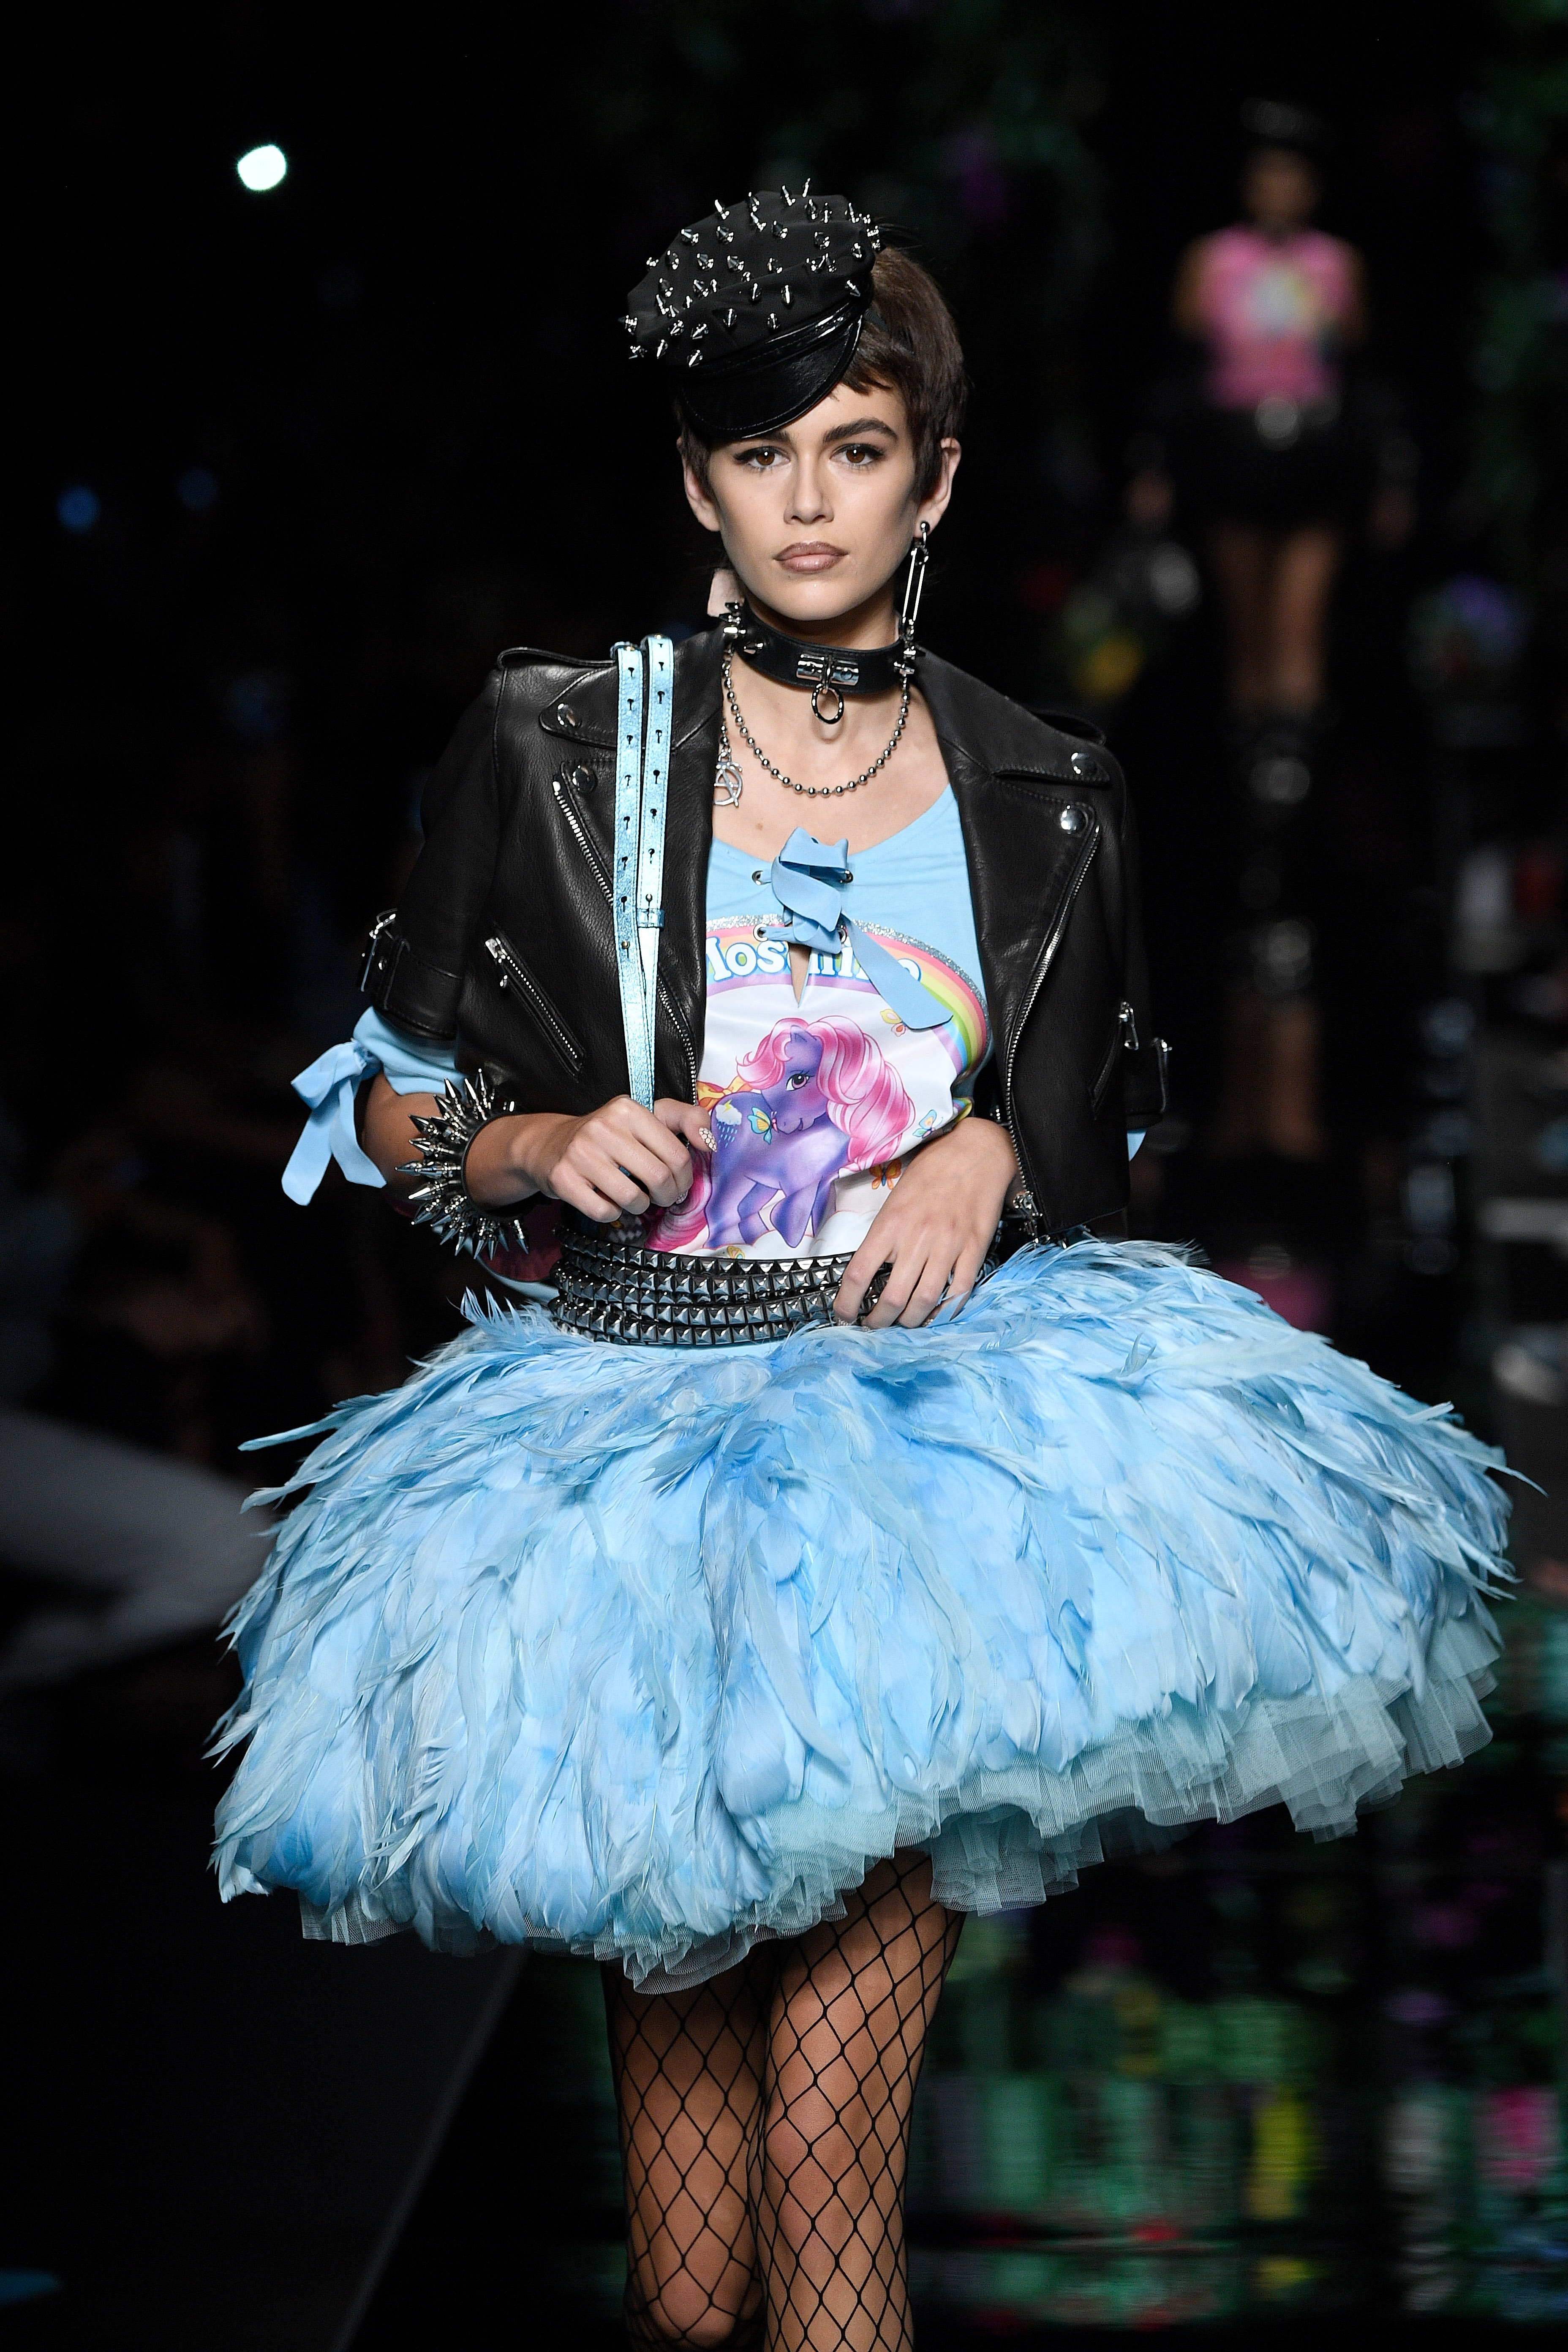 """<p>Moschino's Spring/Summer'18 show at Milan Fashion Week last night had a serious case of déjà vu.</p> <p> <a href=""""http://style.nine.com.au/2017/09/04/11/43/kaia-gerber-16-cindy-crawford"""" target=""""_blank"""" draggable=""""false"""">Model-of -the-moment Kaia Gerber</a> opened the show clad in a leather biker jacket, boots and hat that looked almost identical to the ones worn by her mother, Cindy Crawford, in a famous photograph taken by Peter Lindbergh for <em>Vogue</em> in 1991.</p> <p>If Gerber's outfit wasn't enough of a nostalgic fix, the My Little Pony-inspired creations worn on the runway by Gigi and Bella Hadid, Joan Smalls and Taylor Hill provided a different kind of throwback.</p> <p>Models strutted their stuff in bright, eye-catching tees and sweatshirts with pony prints inspired by the '80s cartoon show. The Pony-powered designs are part of Moschino's creative director Jeremy Scott's limited-edition capsule collection.</p> <p>Balancing out the horsey garments were vibrantly coloured ball gowns and most memorably head-to-toe floral looks worn by Gigi and Gerber that saw the models turn into real-life flower bouquets.</p> <p>Click through to see all the highlights from Moschino's S/S'18 show.</p>"""